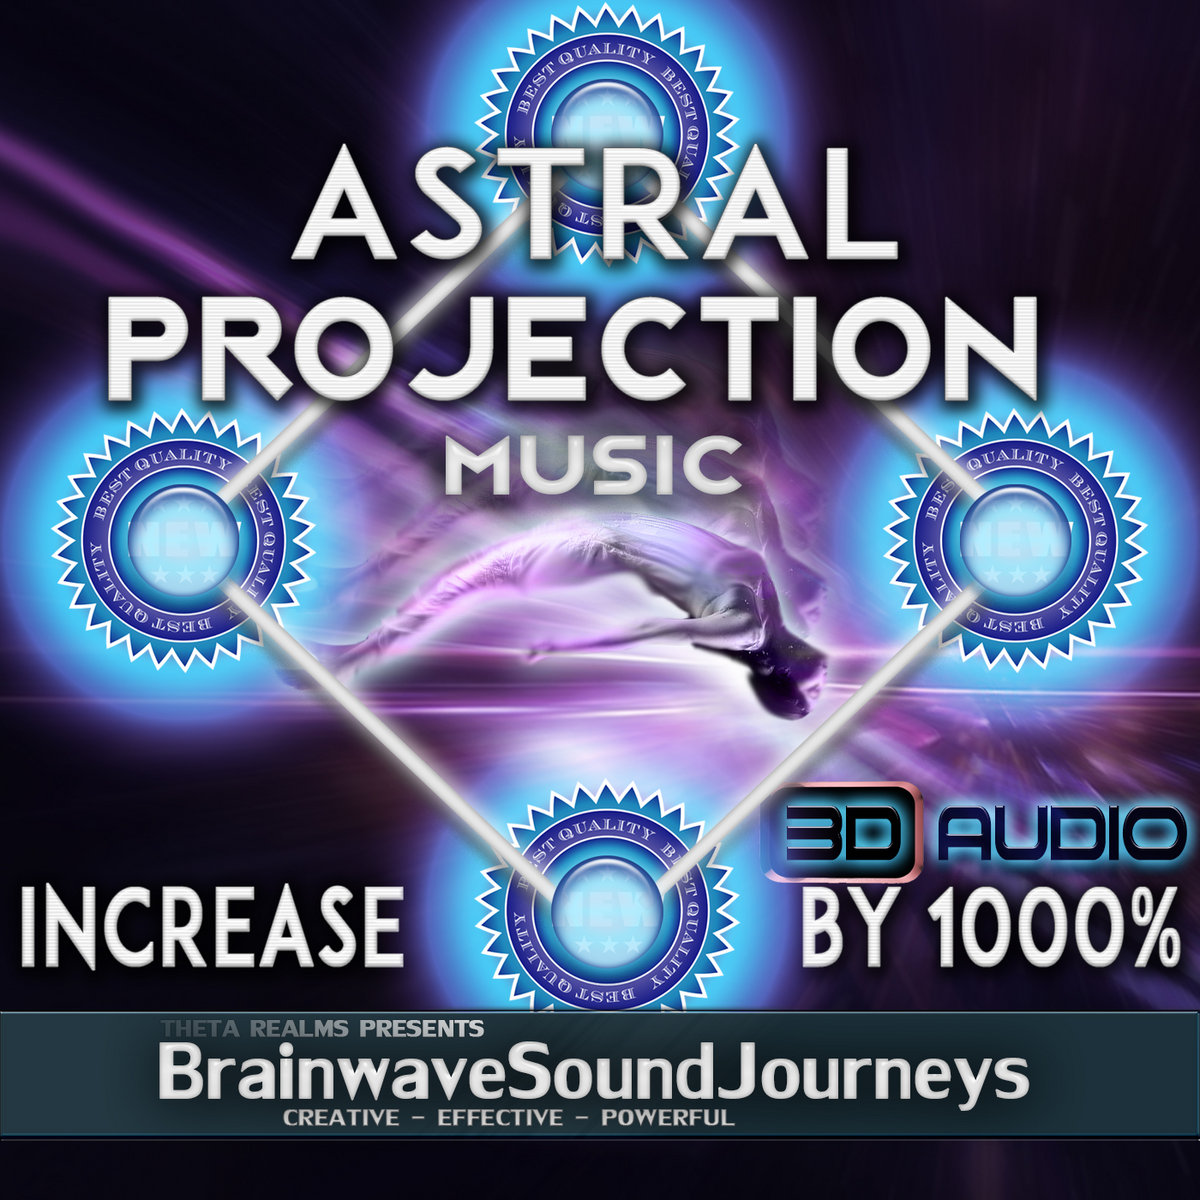 ✧3D Audio ASMR Astral Projection Music✧1000% INCREASE POTENTIAL